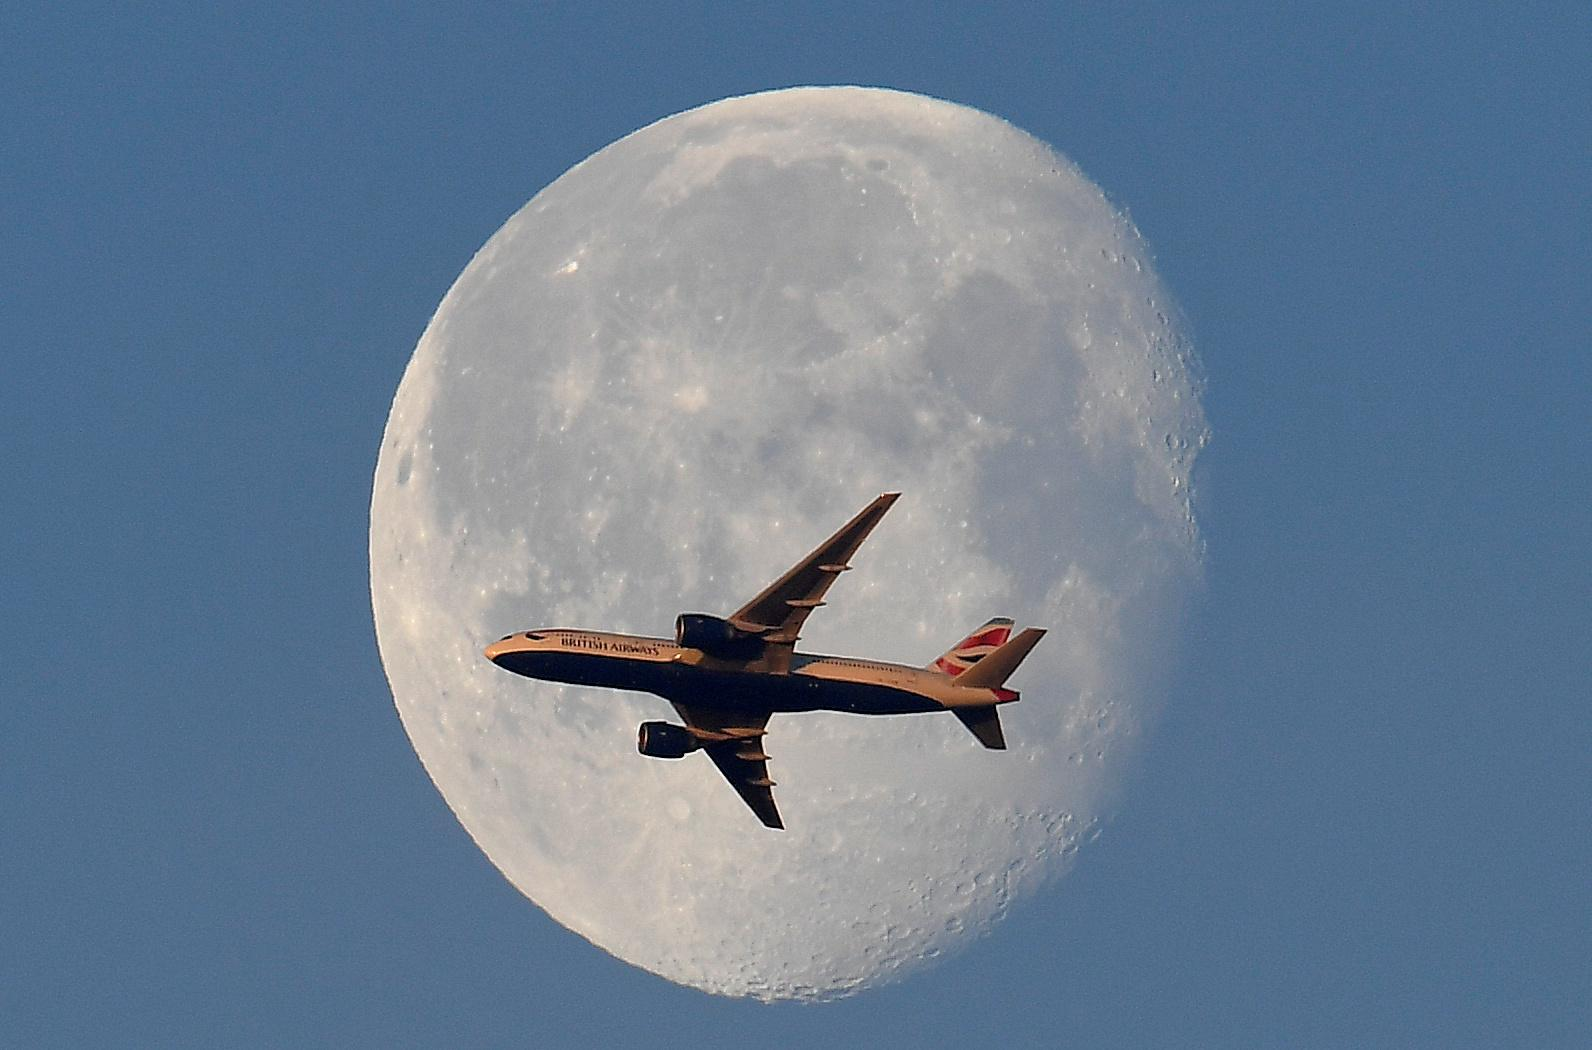 A British Airways passenger plane flies in front of the moon above London, Britain, May 3, 2018. Toby Melville